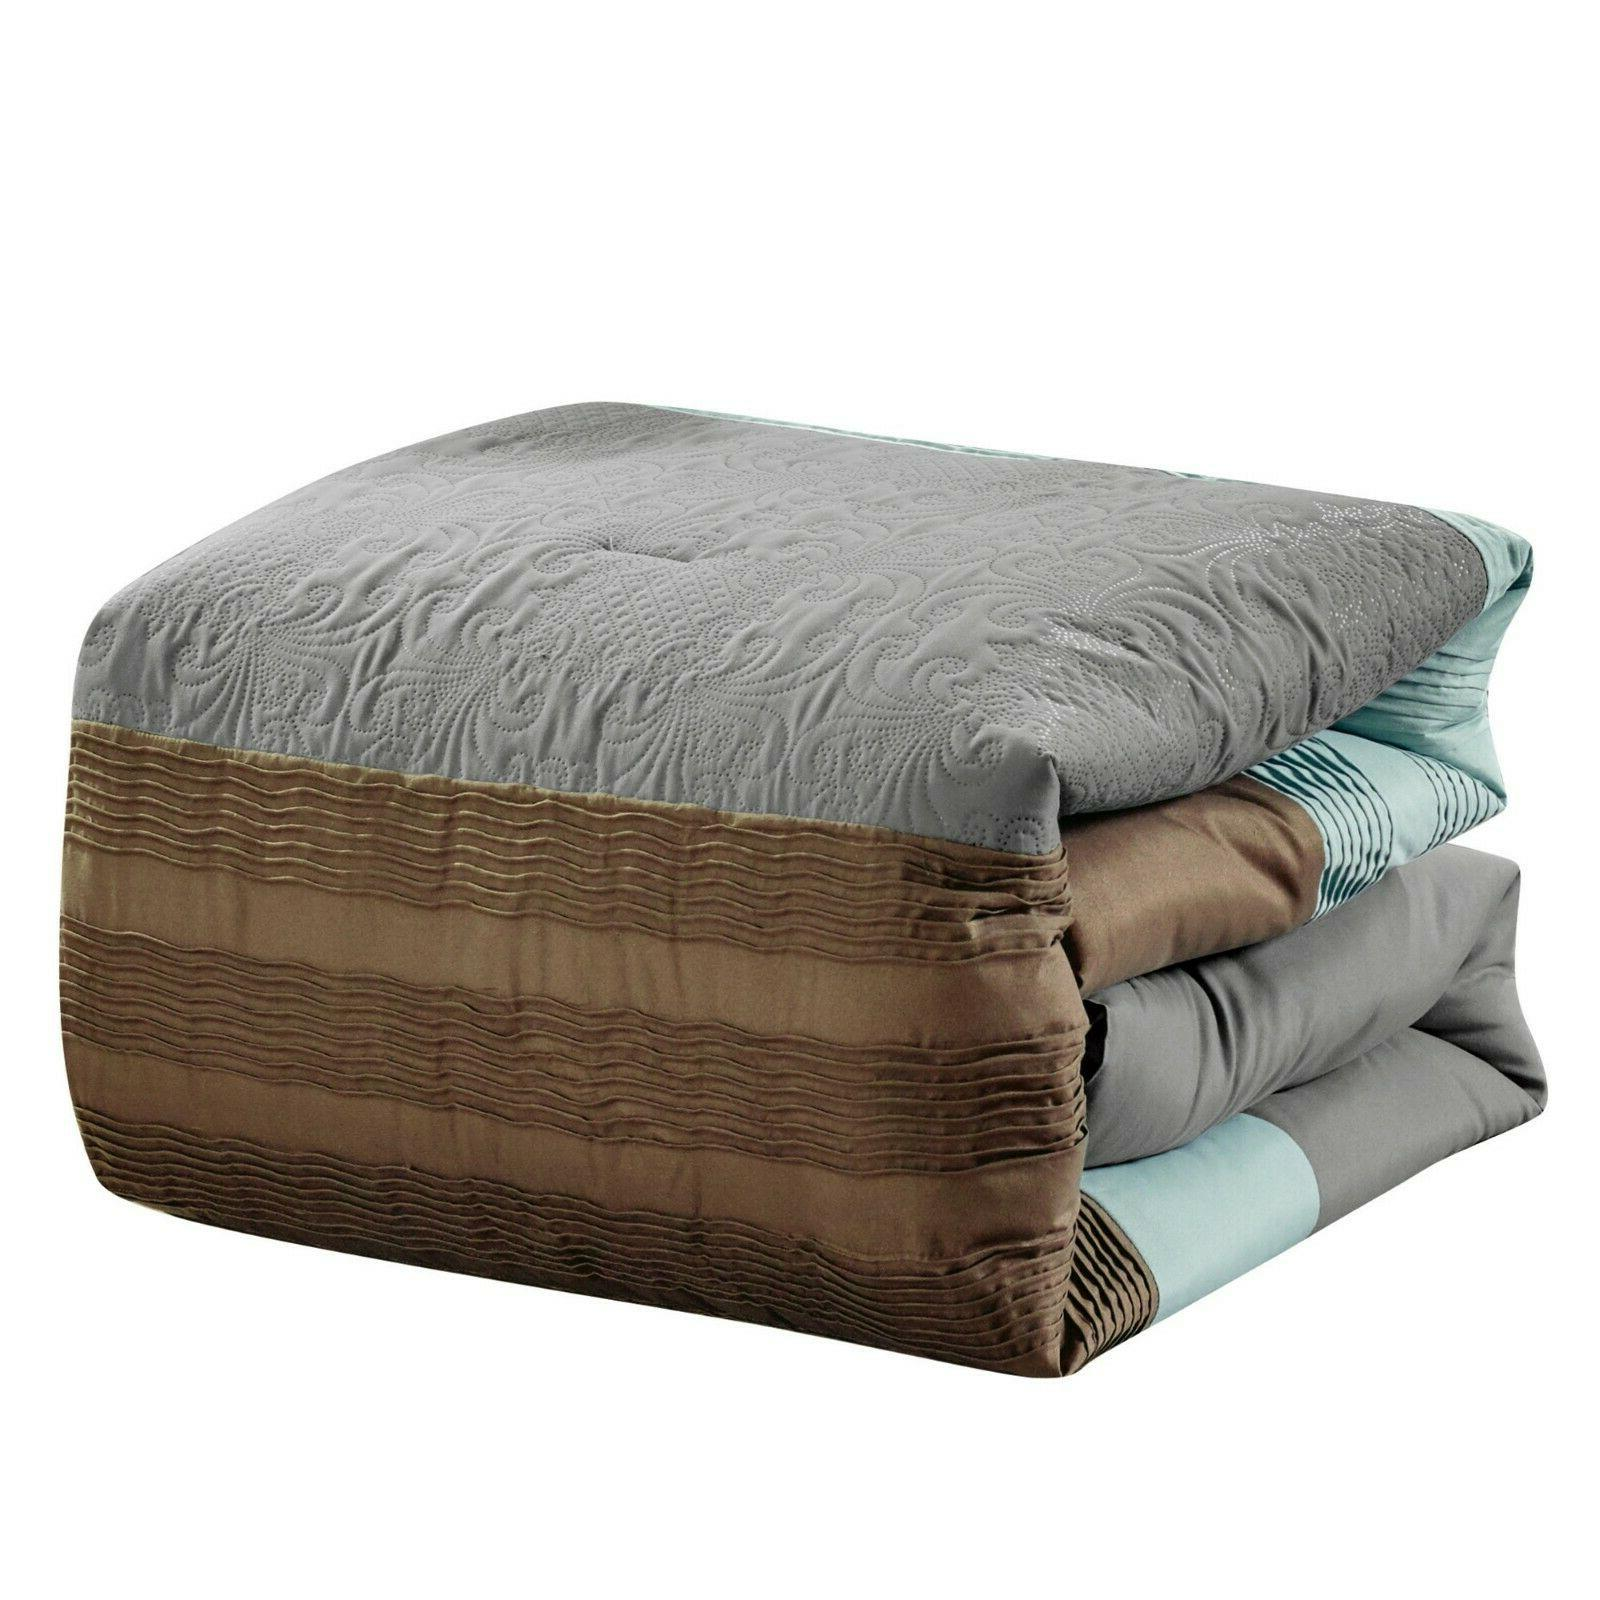 7 Piece Marinko Embossed and Pleated Set Bed-In-A-Bag